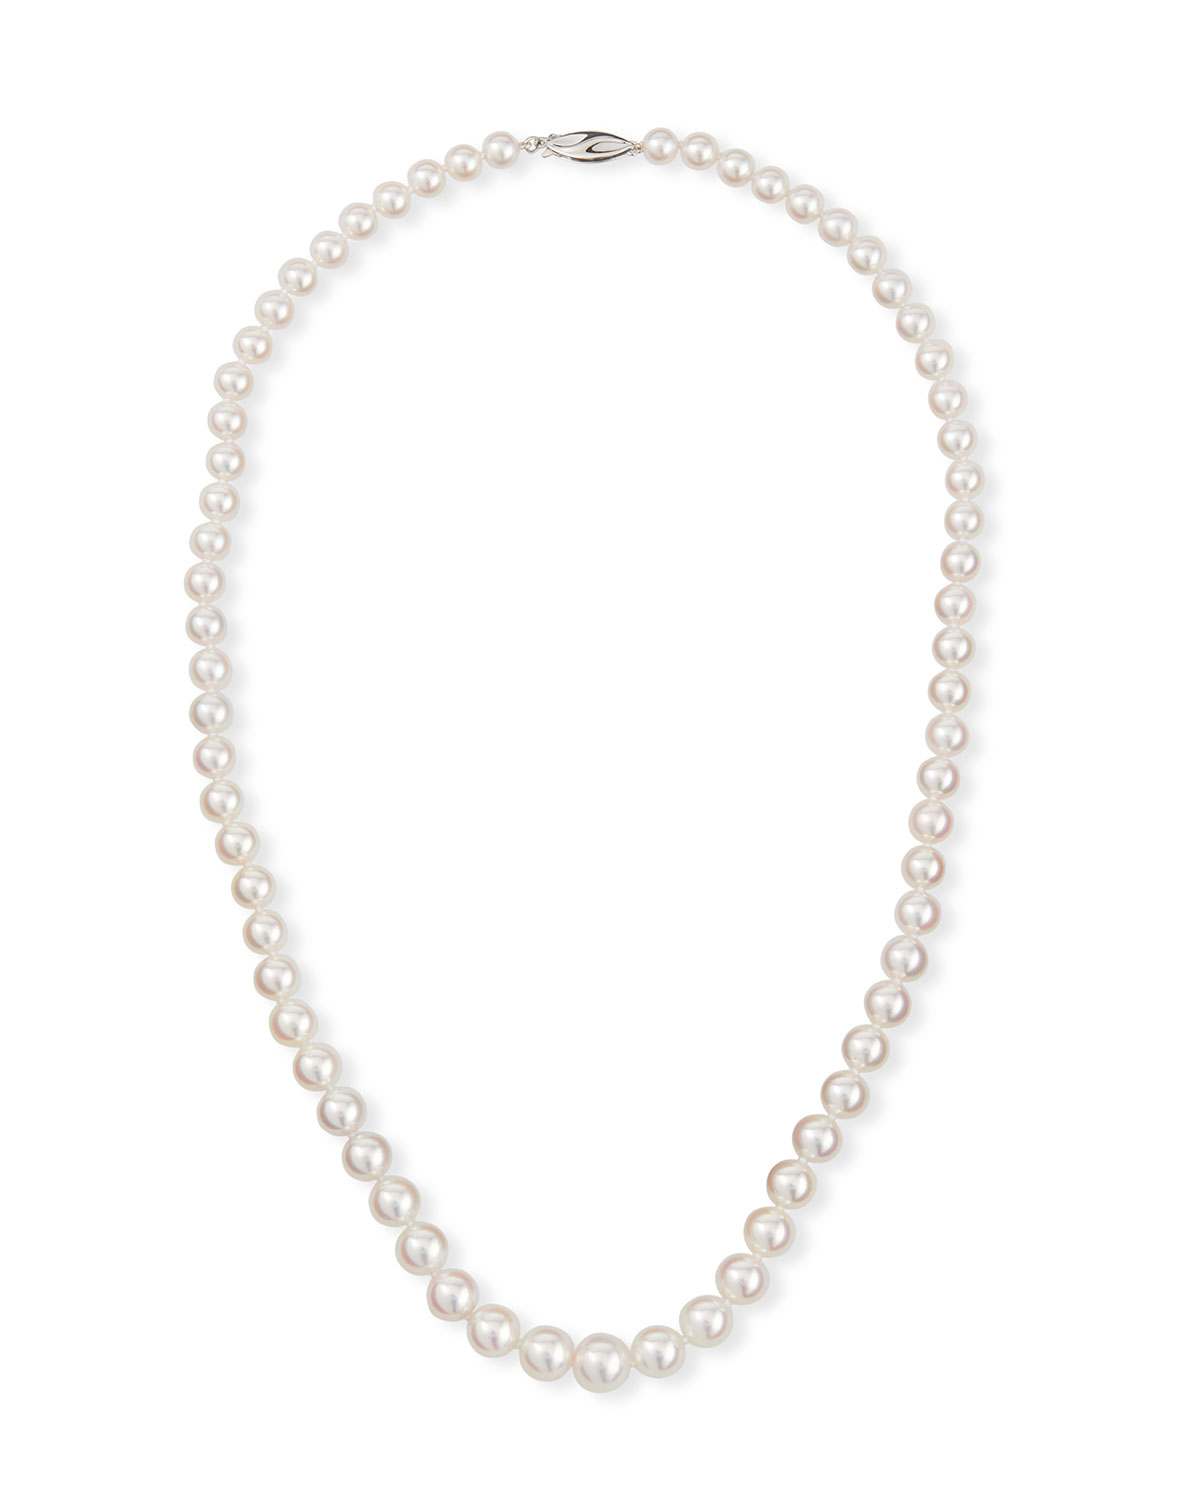 18k White Gold Graduated Pearl Necklace